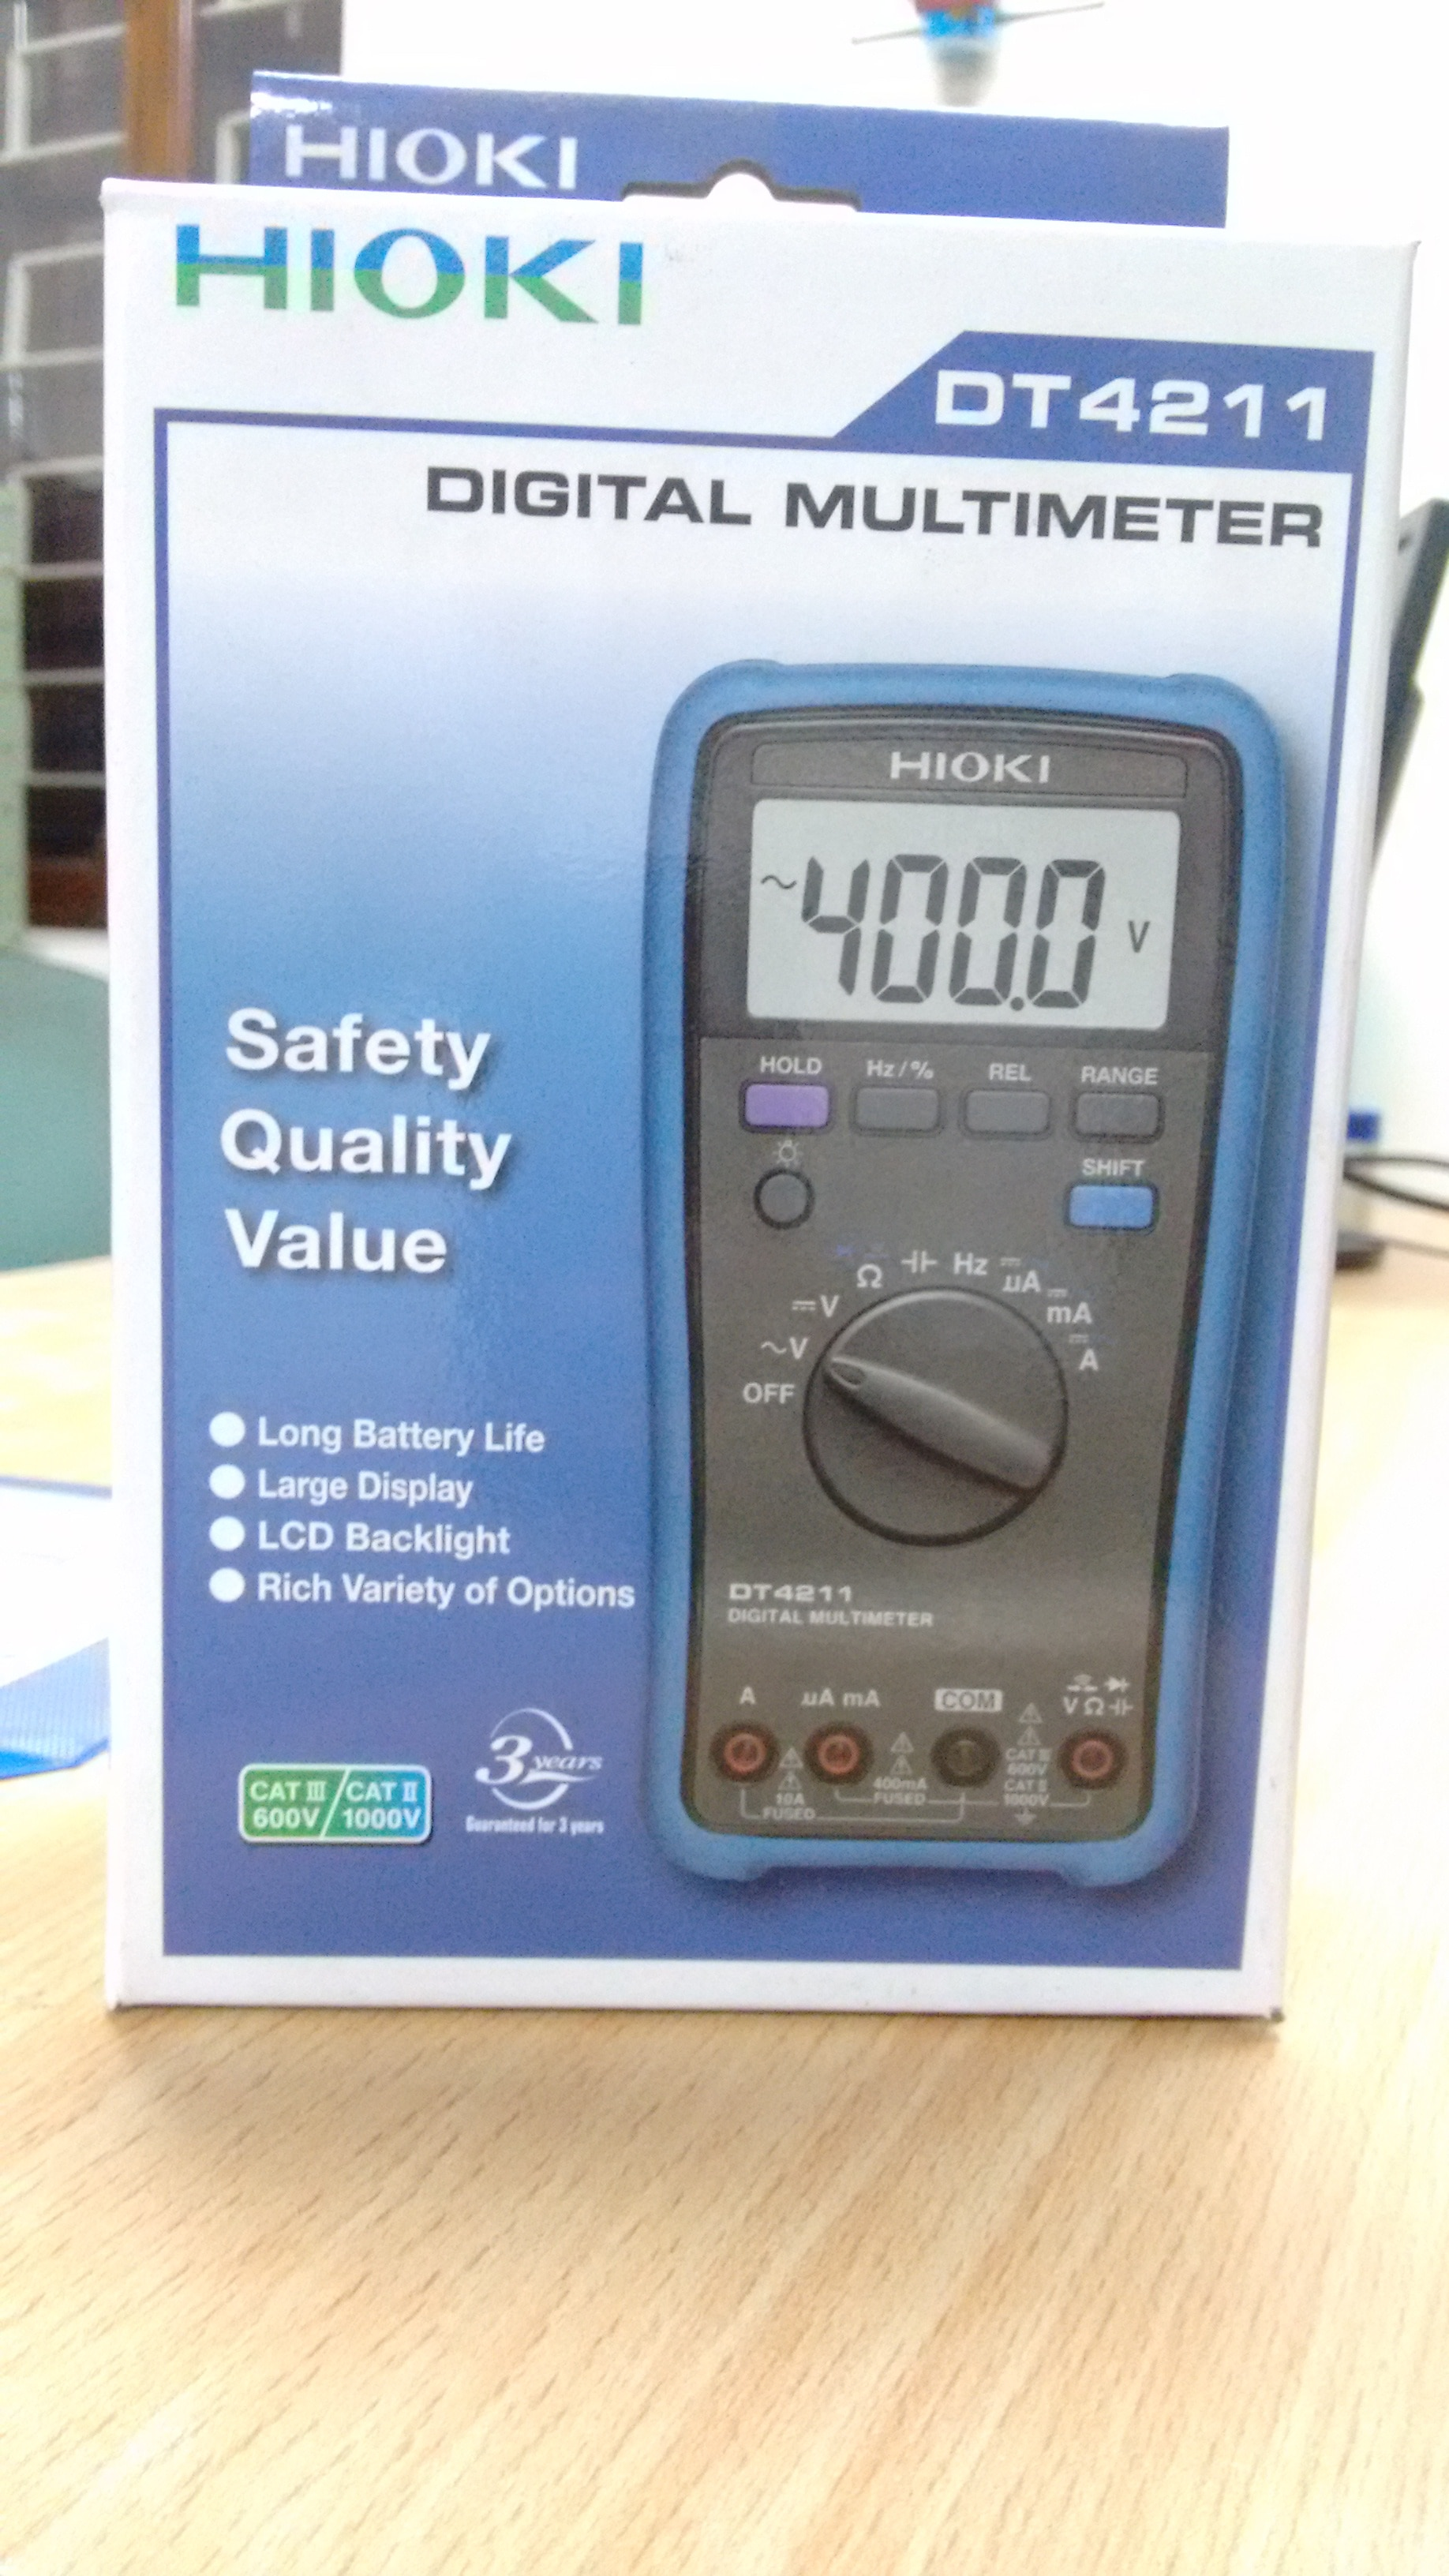 Digital Multimeter from HIOKI Japan. DT 4211. Belongs to the popular HiTester Series of DT42__. High Quality. Better than the competition. Only at Rs 4000.00